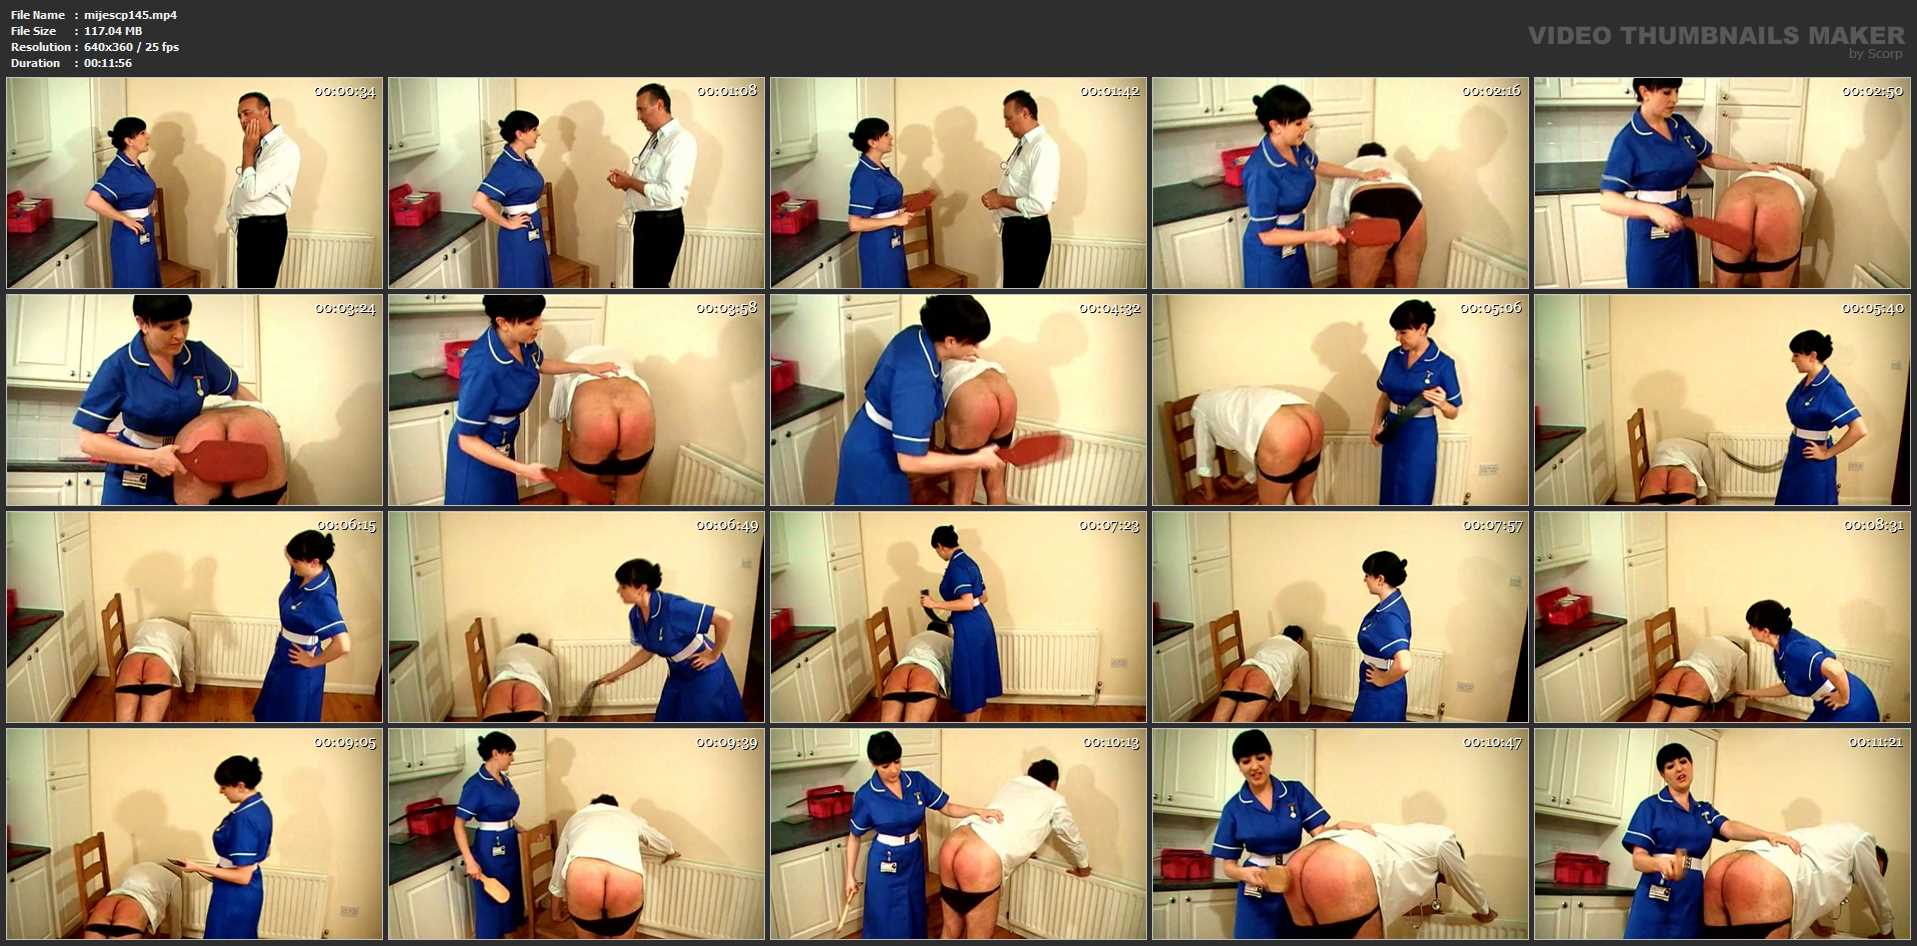 Jessica Wood In Scene: Lazy doctor - MISSJESSICAWOODVIDEOS - LQ/360p/MP4